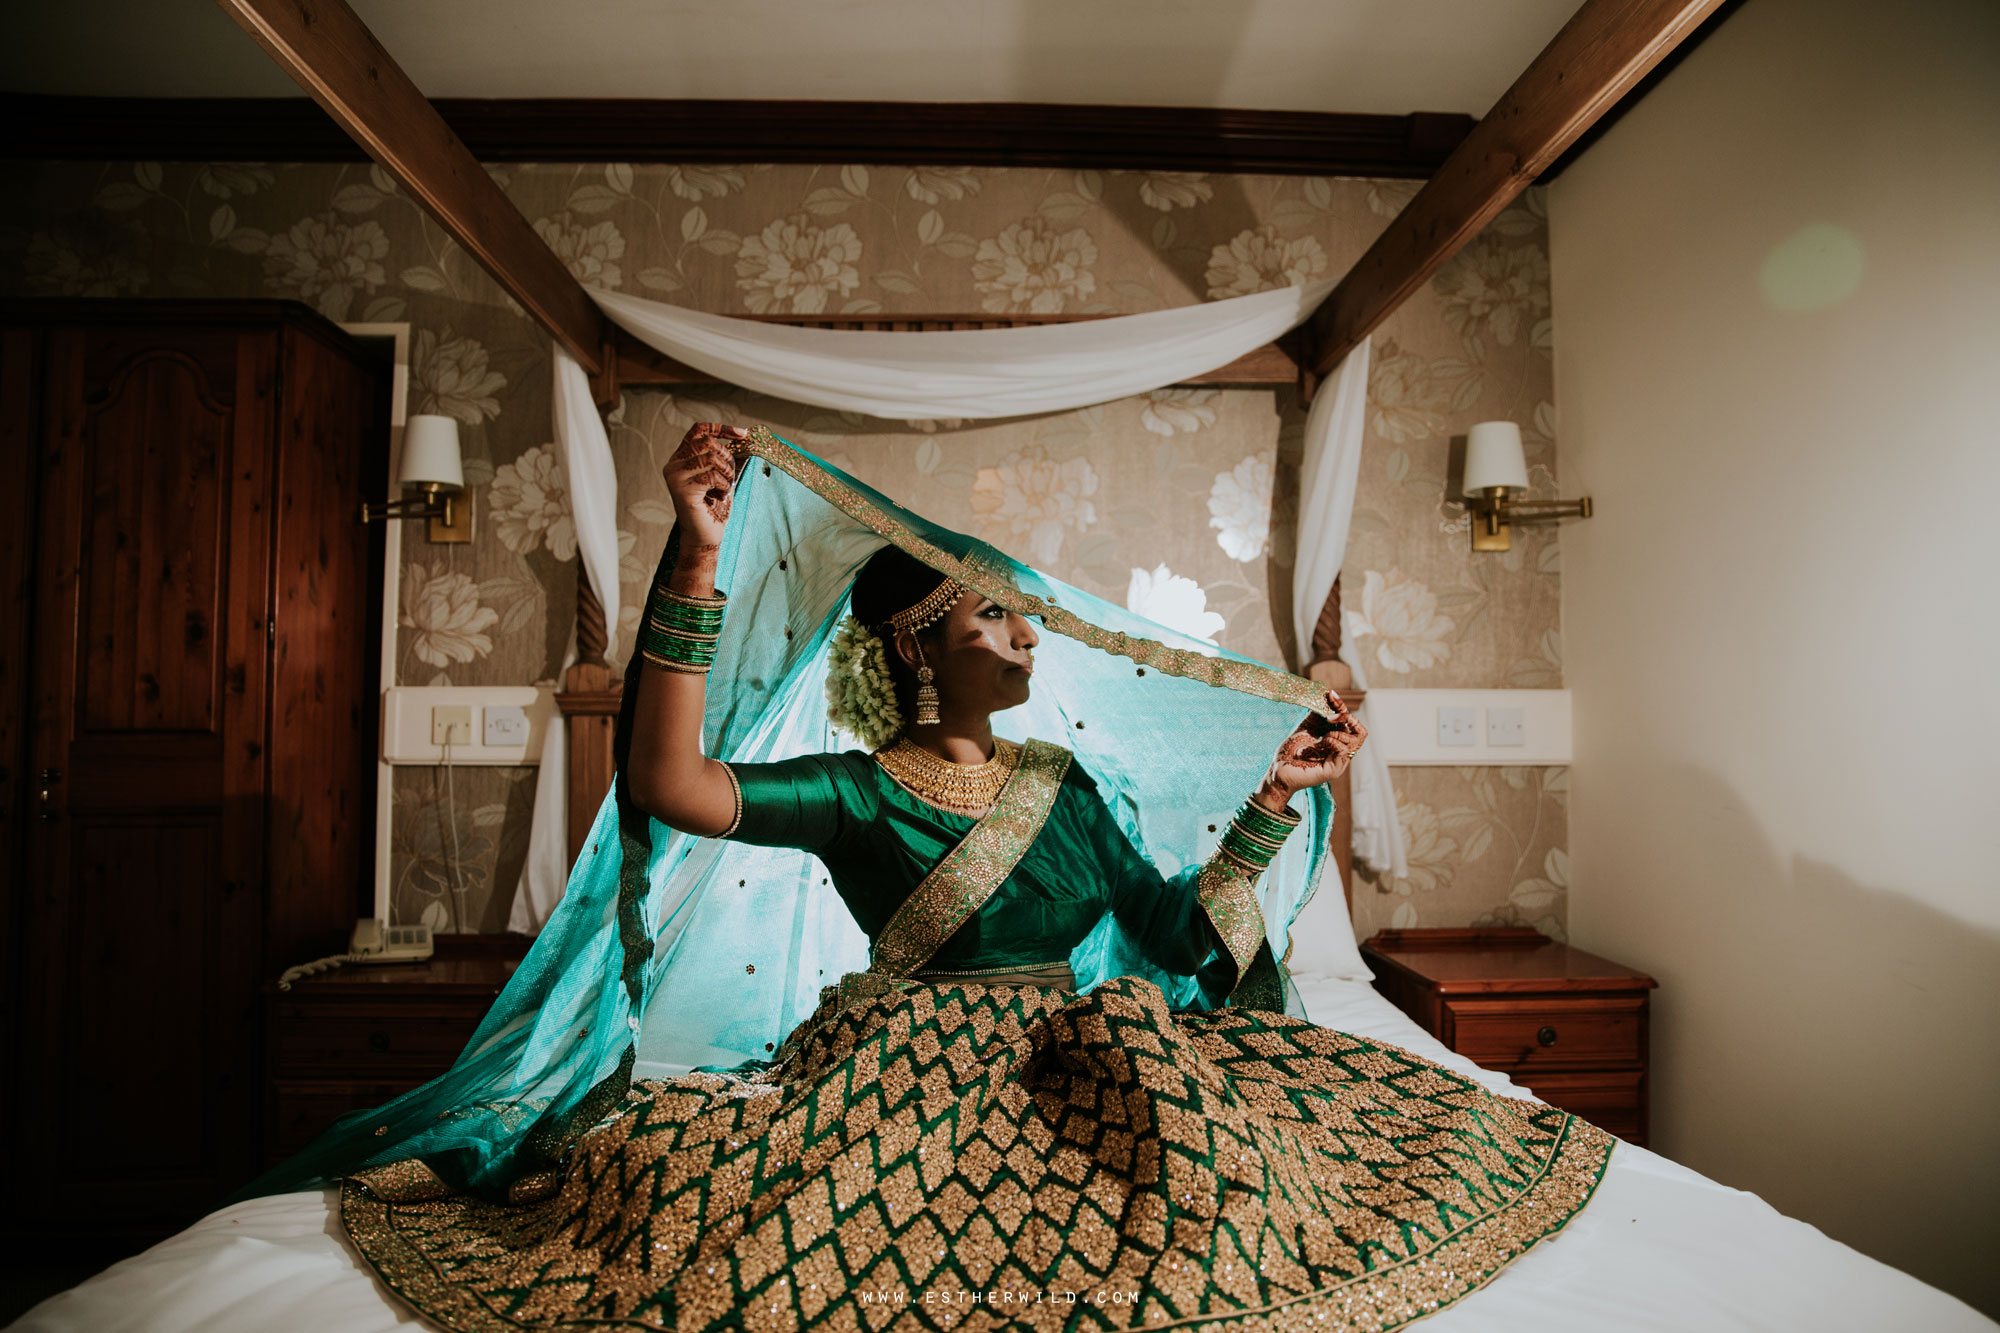 Northbrook_Park_Farnham_Surrey_London_Wedding_Hindu_Fusion_Esther_Wild_Photographer_IMG_3063.jpg